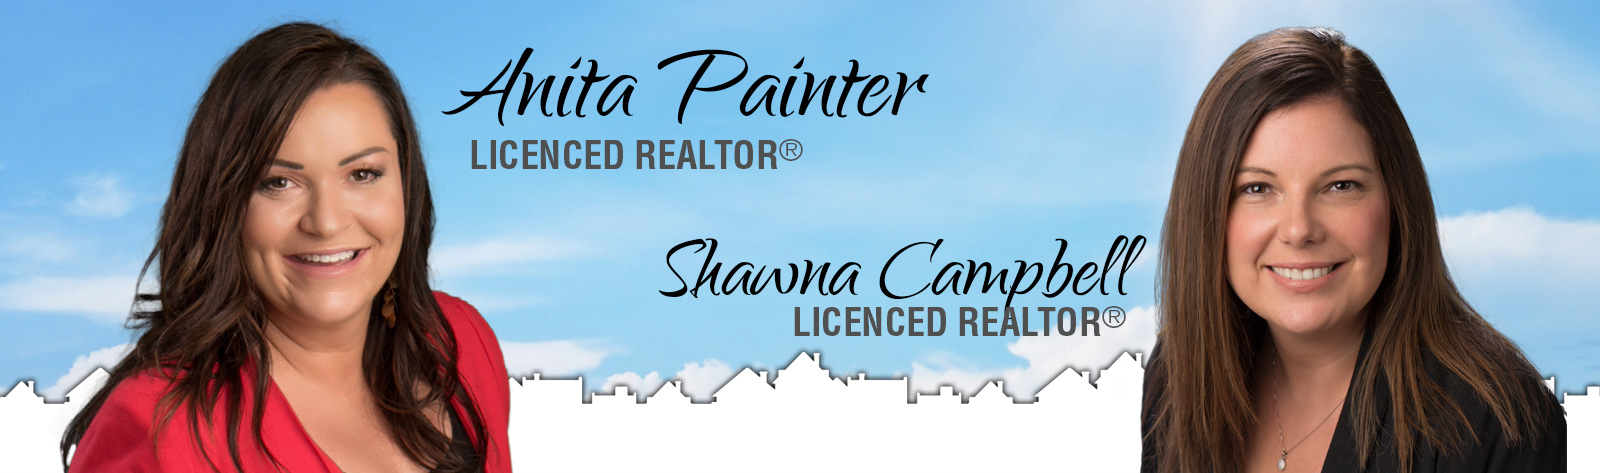 Anita Painter and Associates